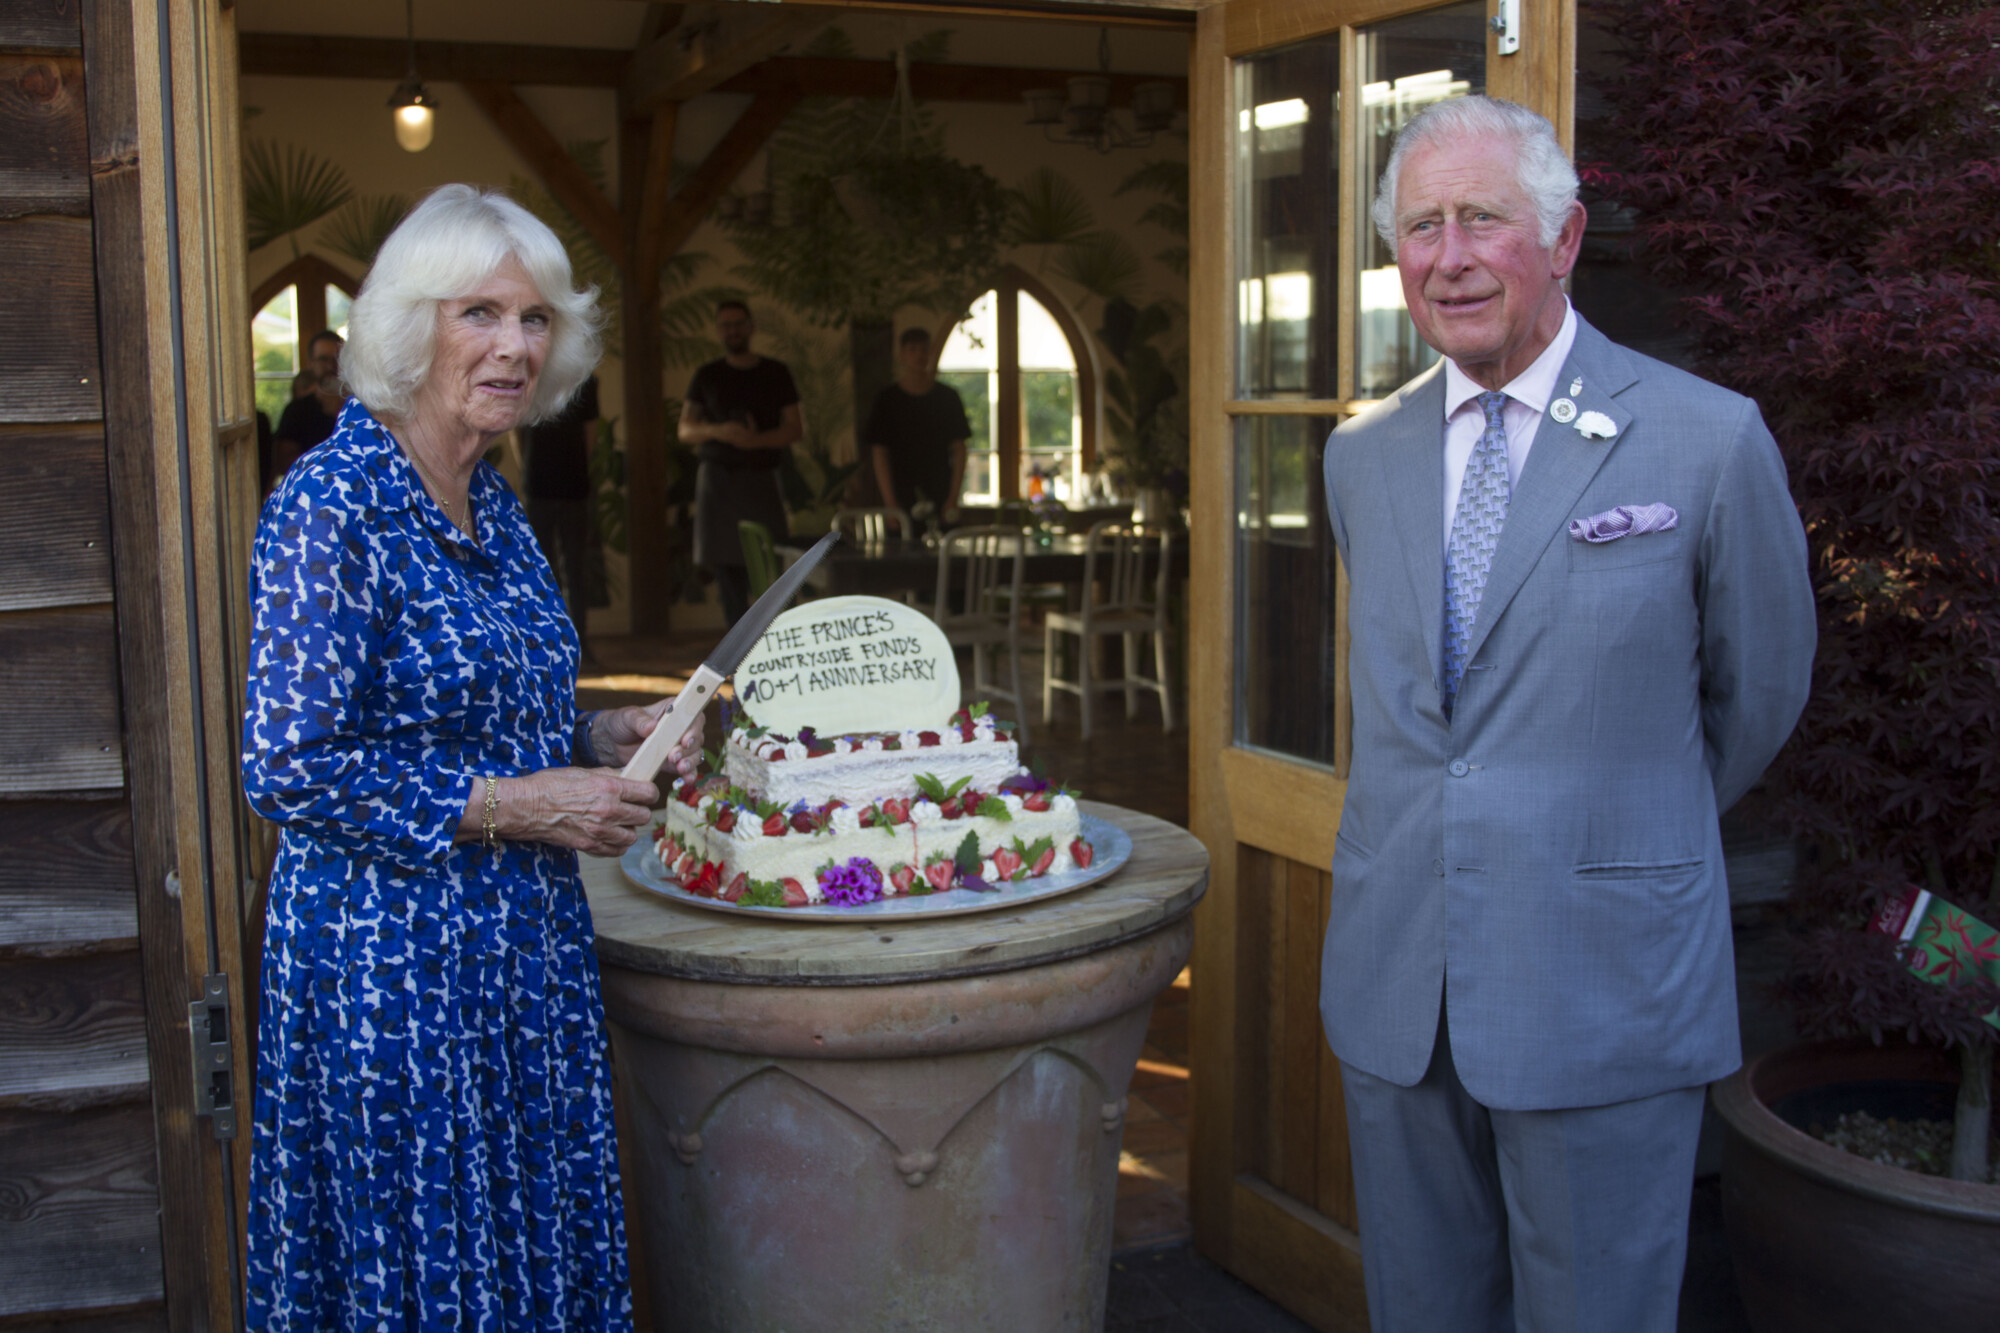 the Prince of Wales and duchess of Cornwall rural communities